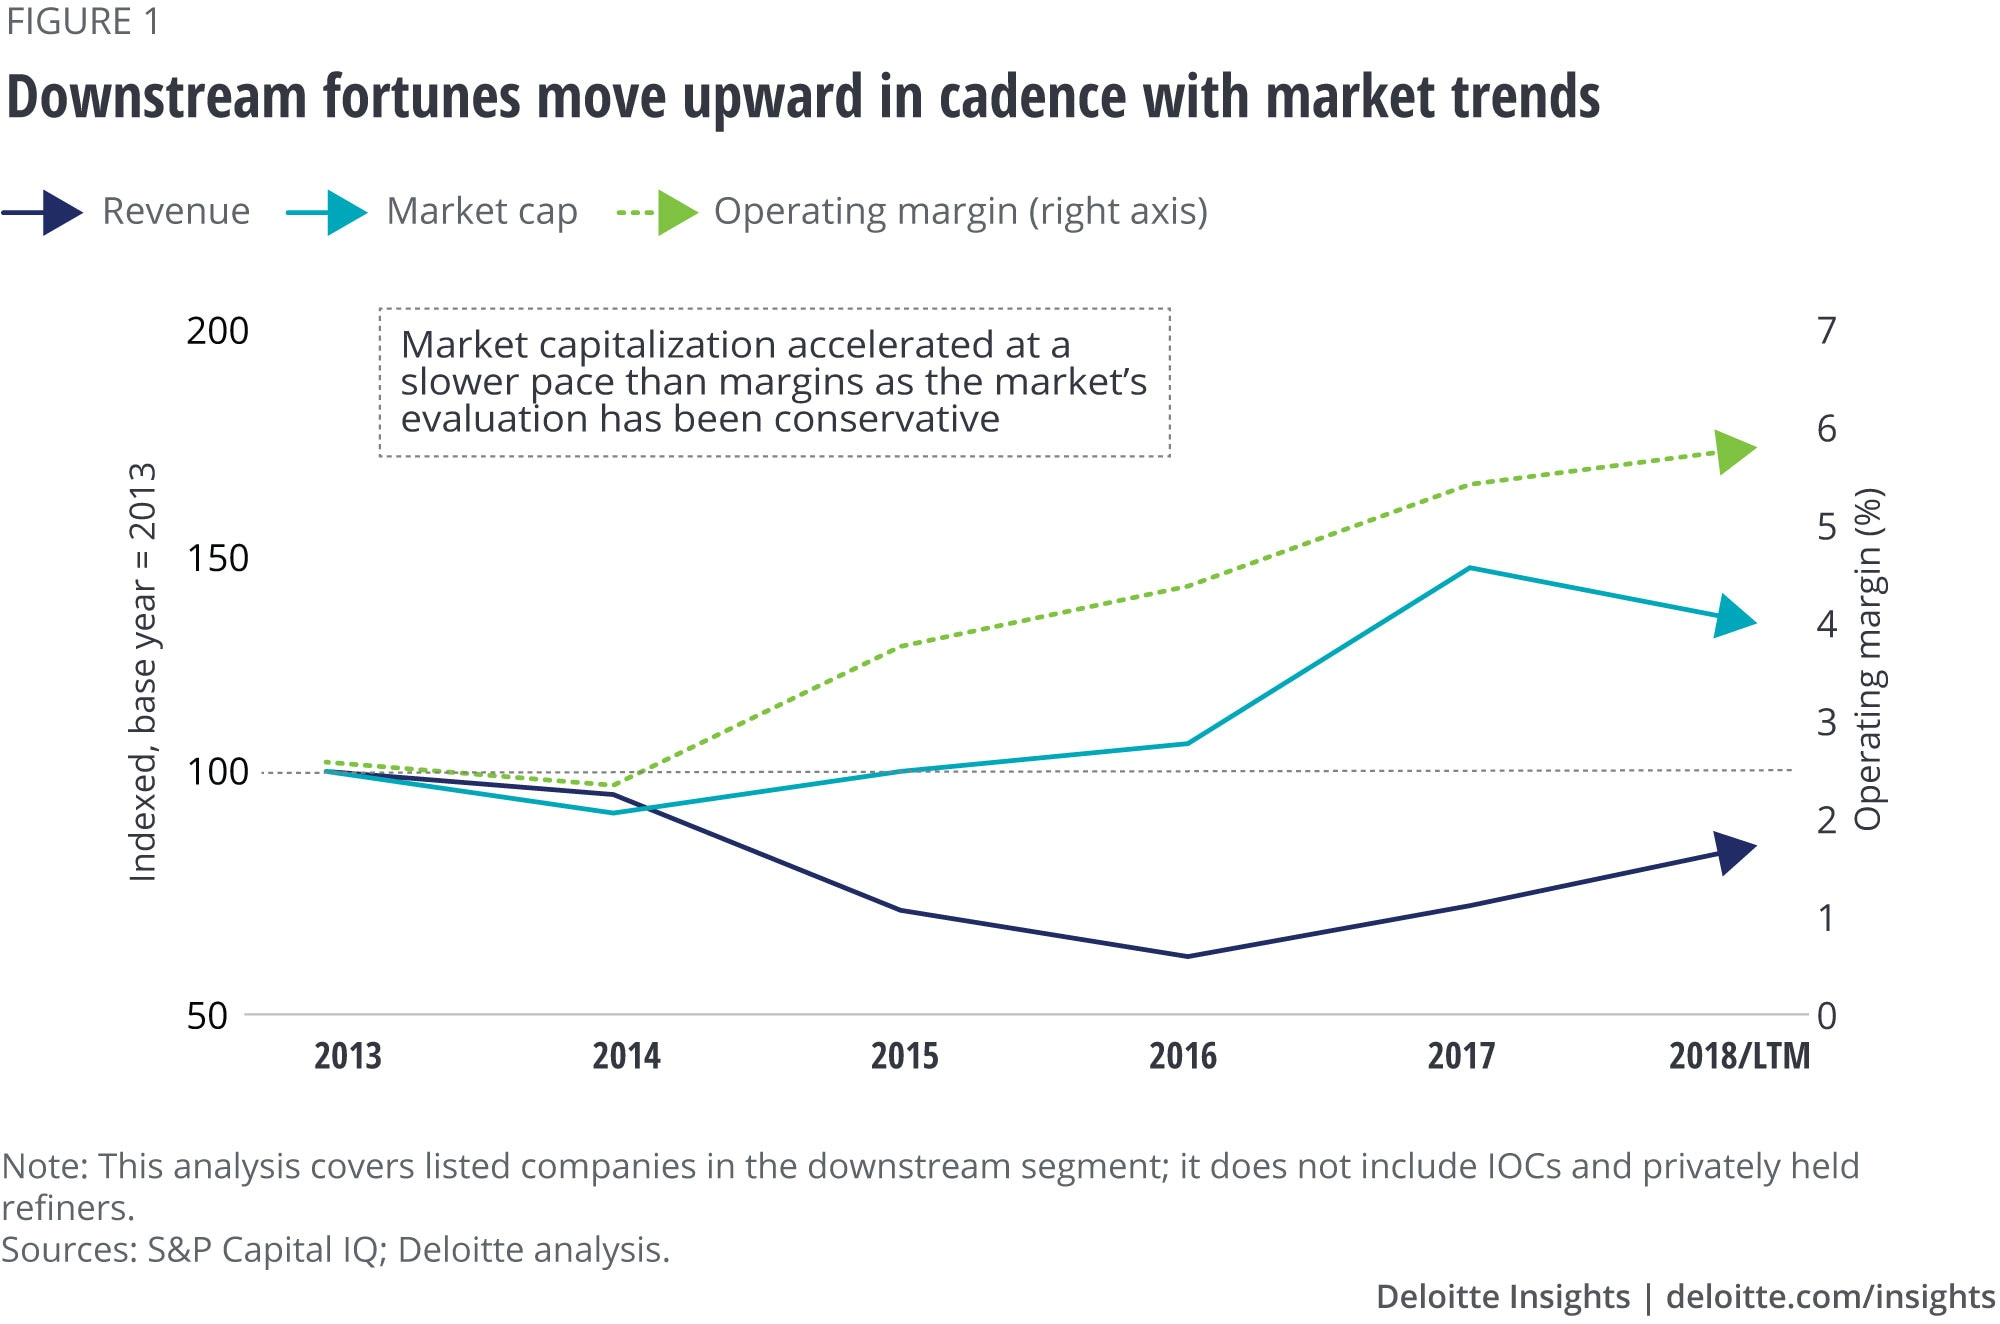 Downstream fortunes move upward in cadence with market trends